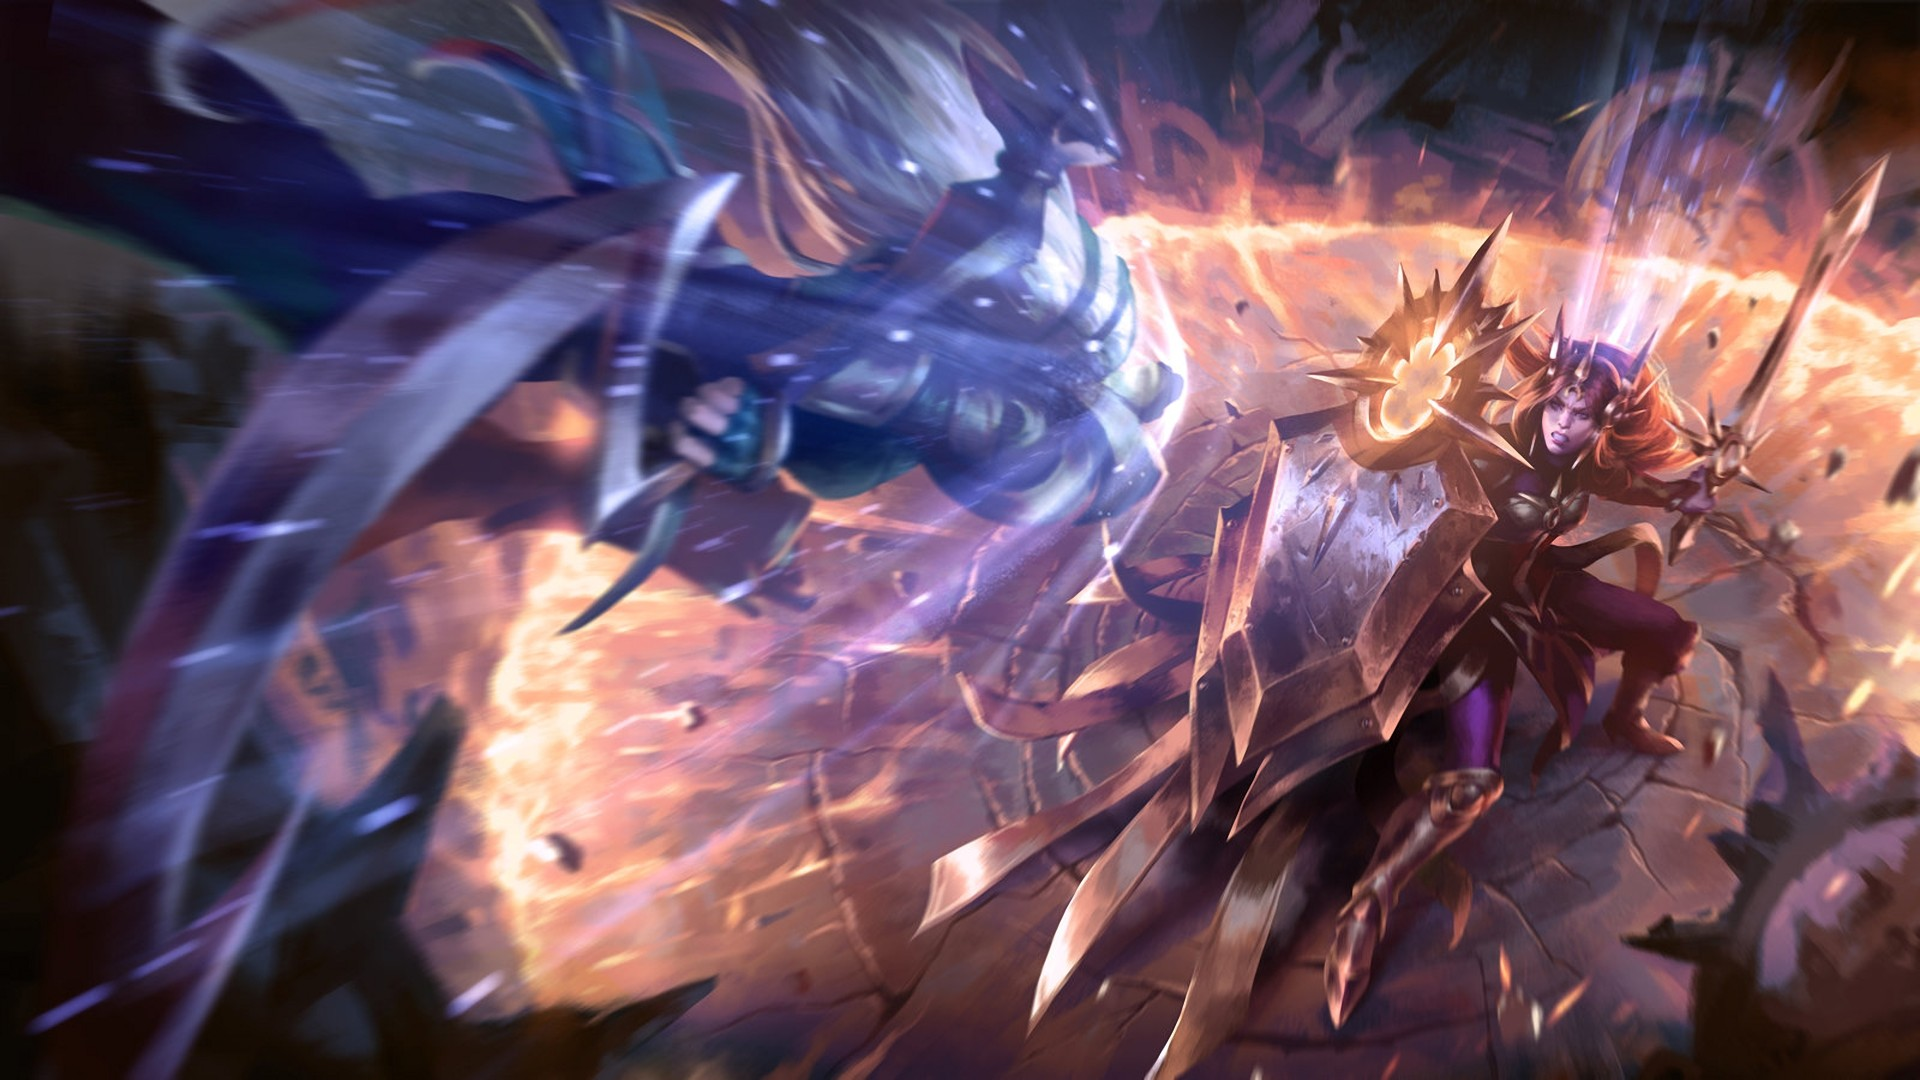 Res: 1920x1080, Anime  Diana (league Of Legends Summoner's Rift Leona (League of  Legends) League